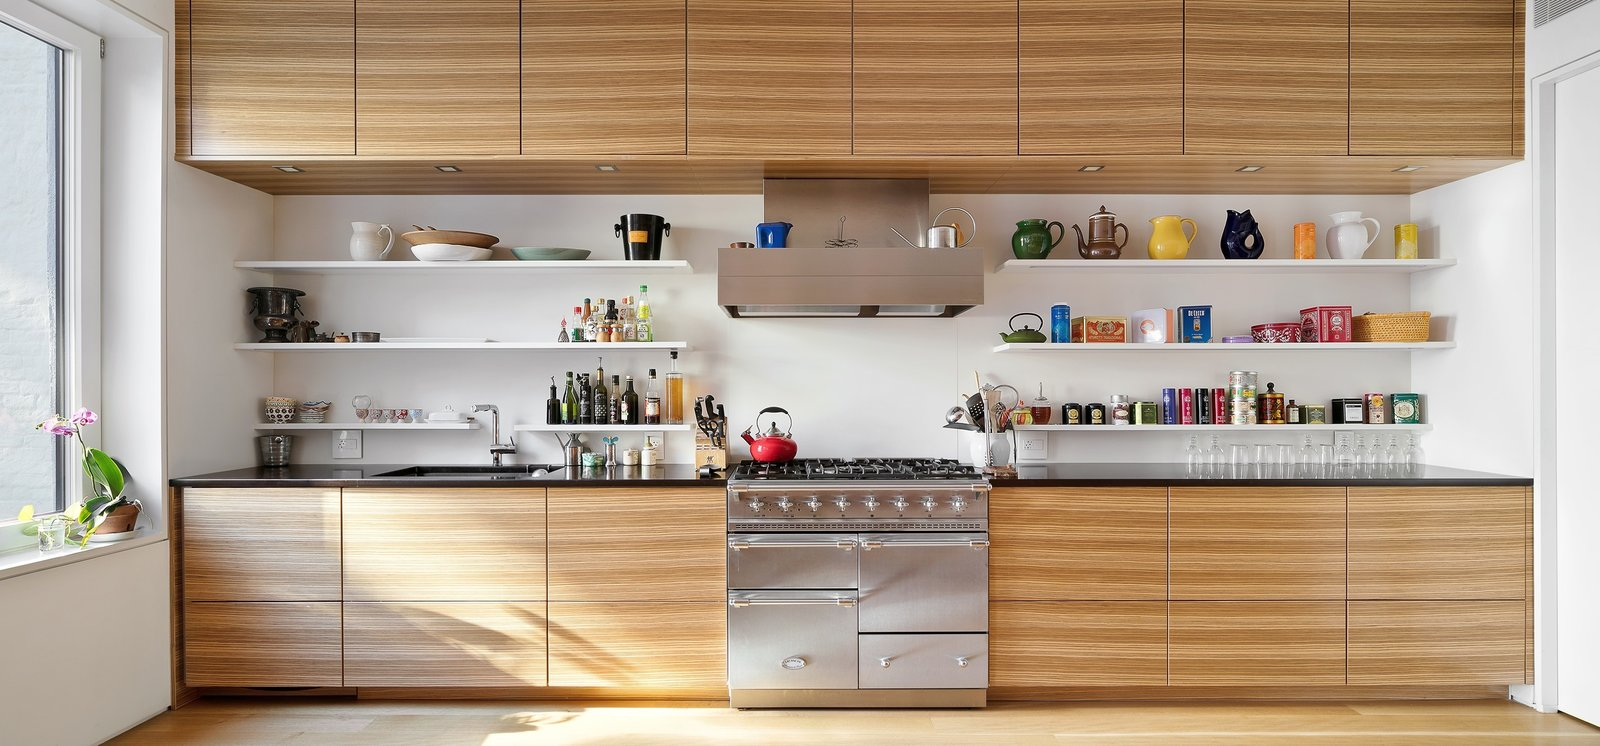 Sleek Poghenpohl kitchen with La Conch Triple Oven  Uptown Loft